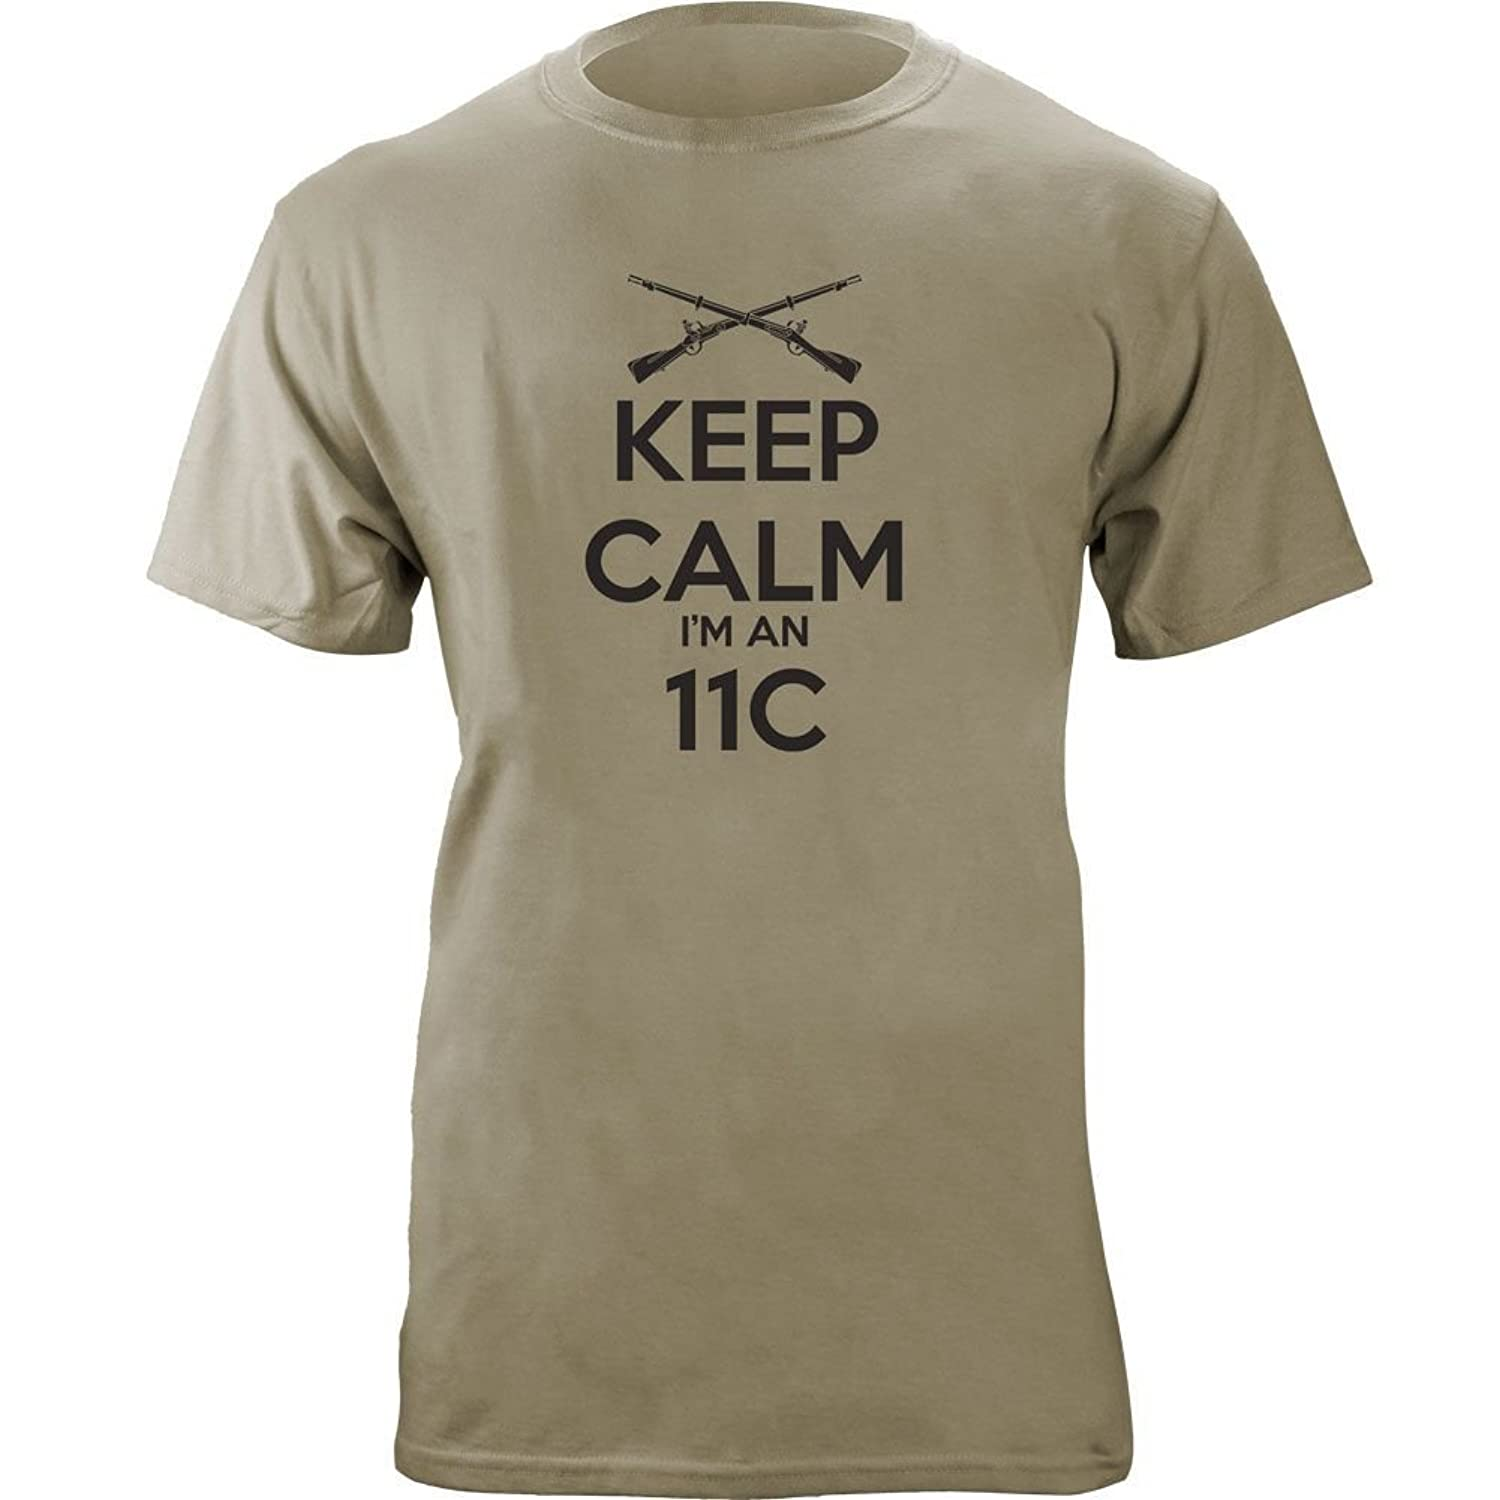 Nice Classic Keep Calm I'm an 11C Indirect Fire T-Shirt